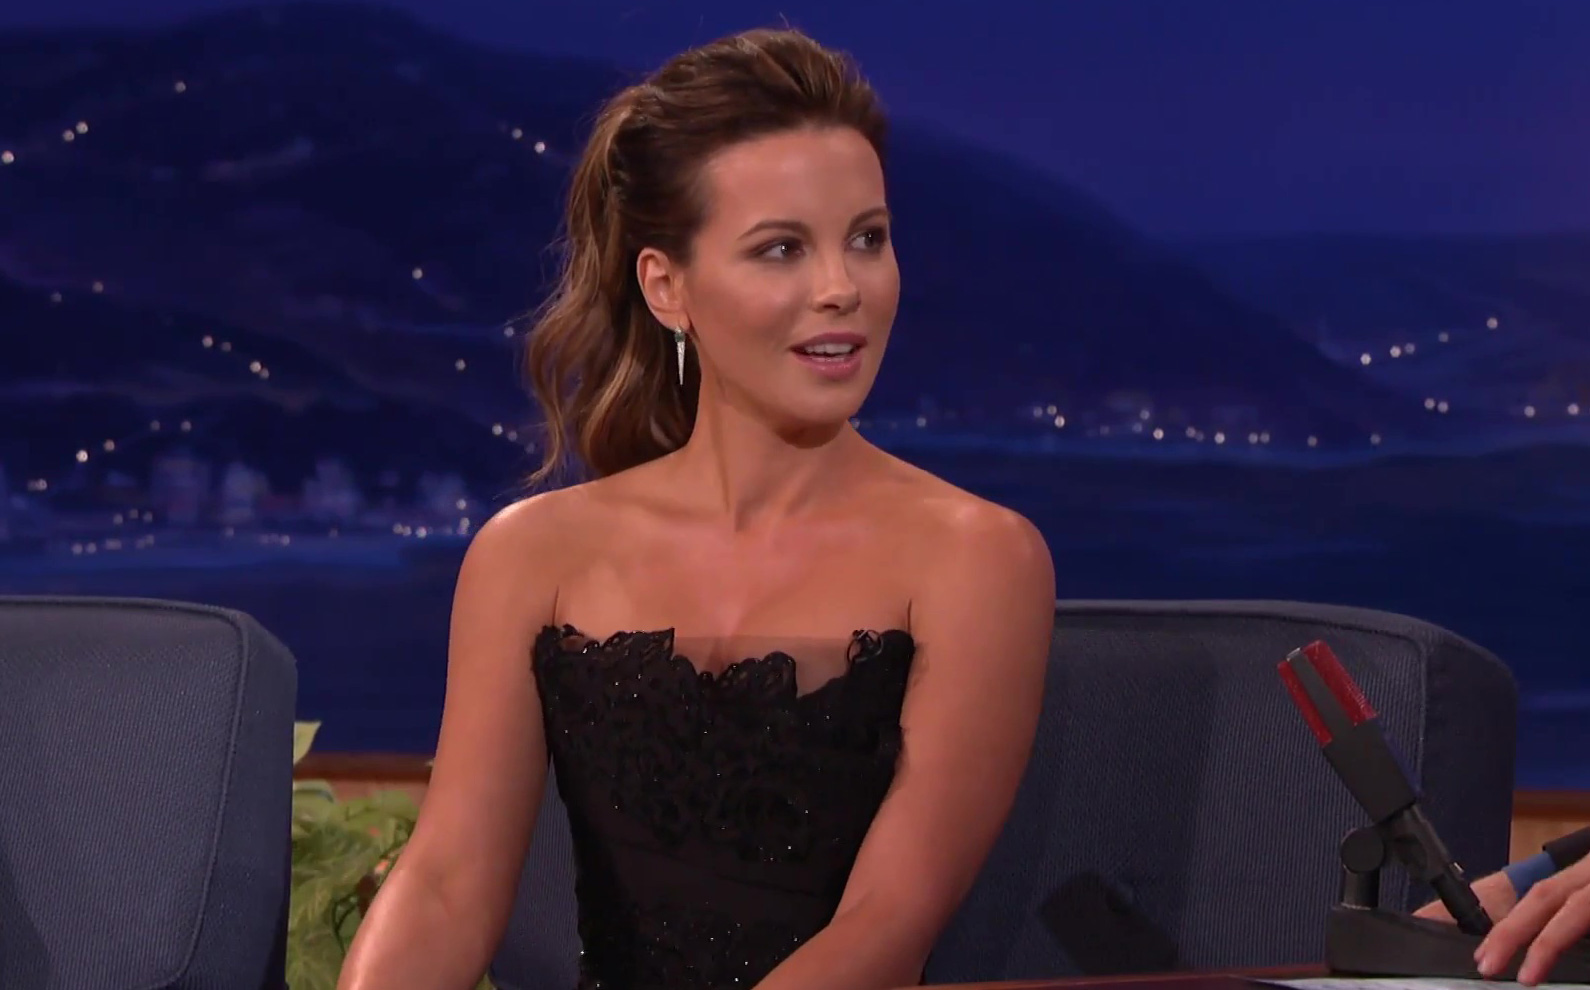 CONAN | Kate Beckinsale Texts Her Daughter Naked Pics Of Michael Sheen